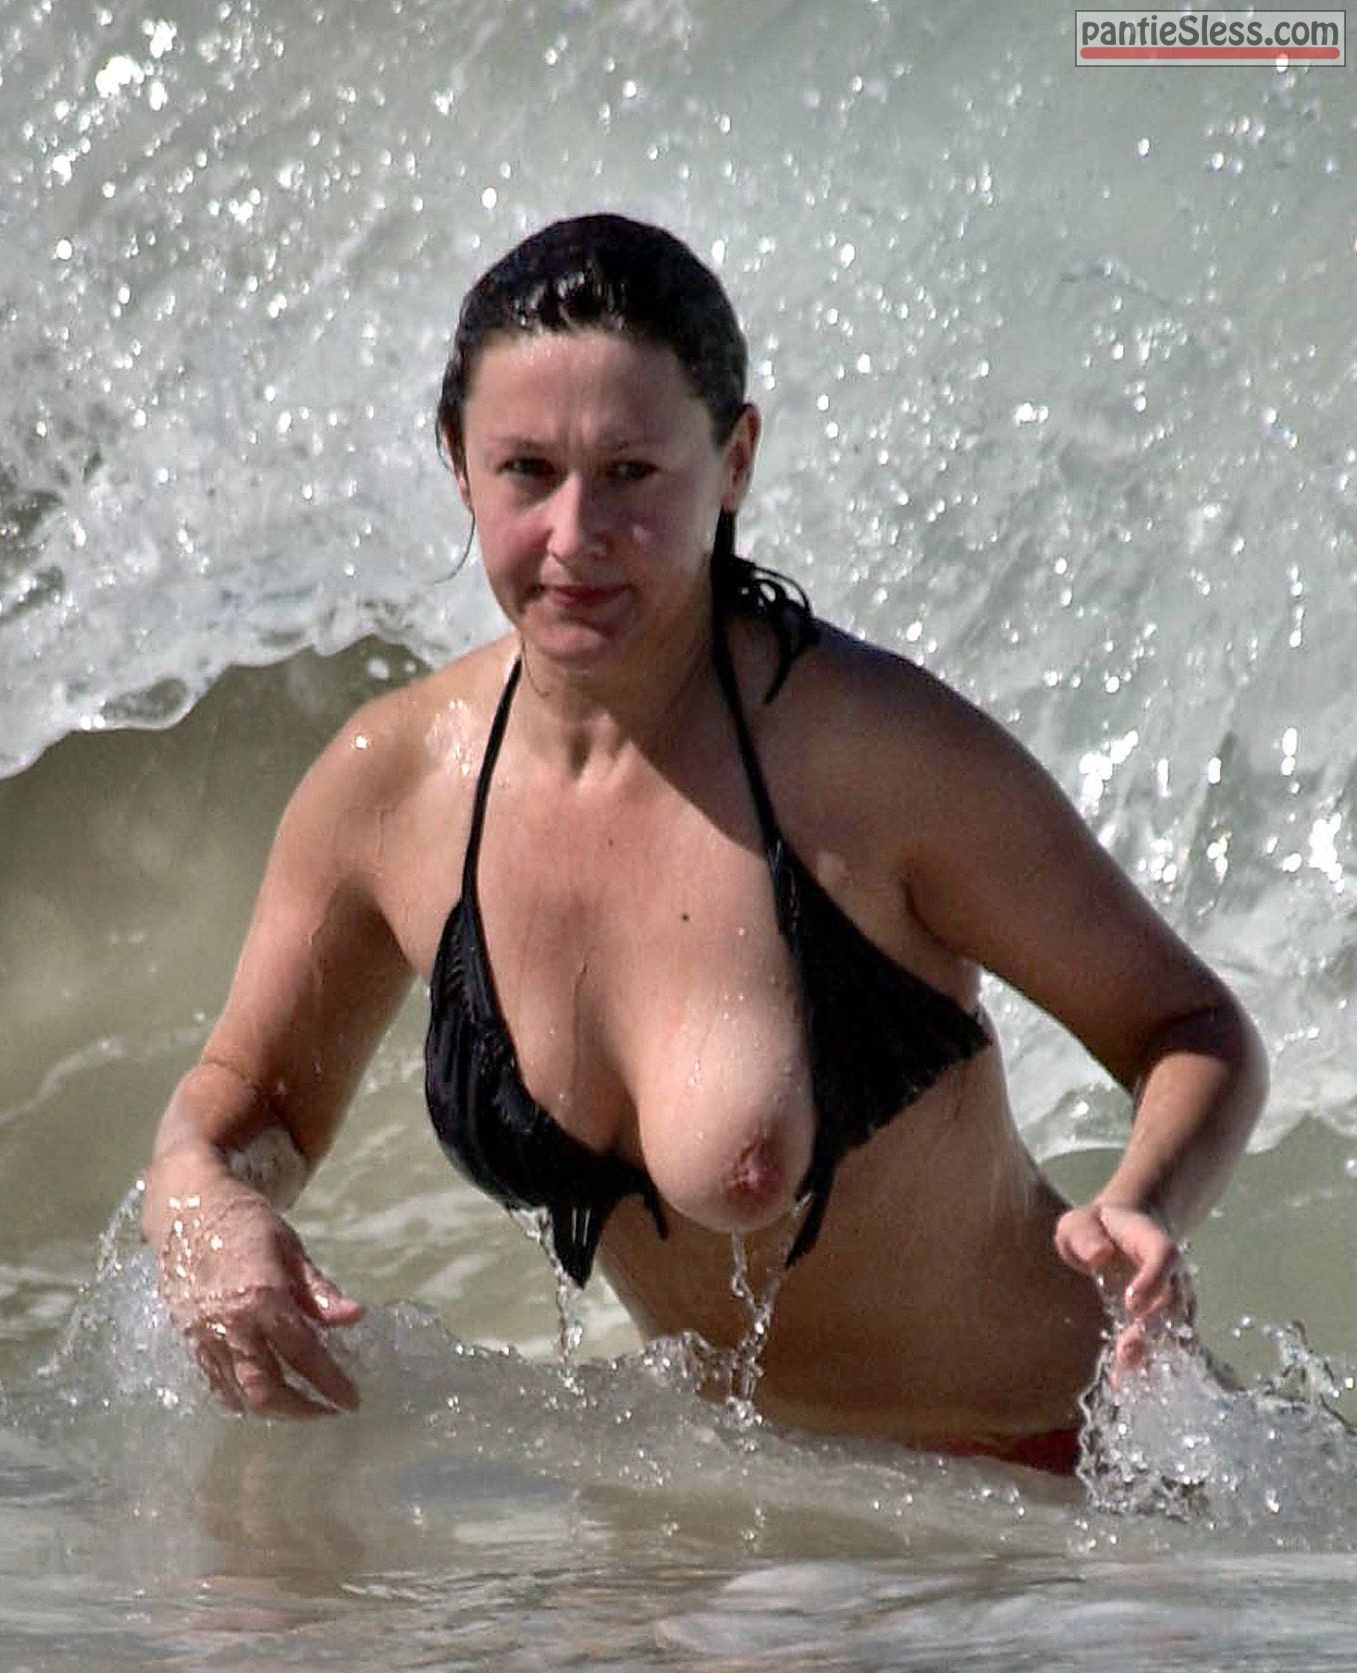 voyeur public flashing nip slip milf boobs flash accidental flash  Bikini boob slip accident in the sea for MILF